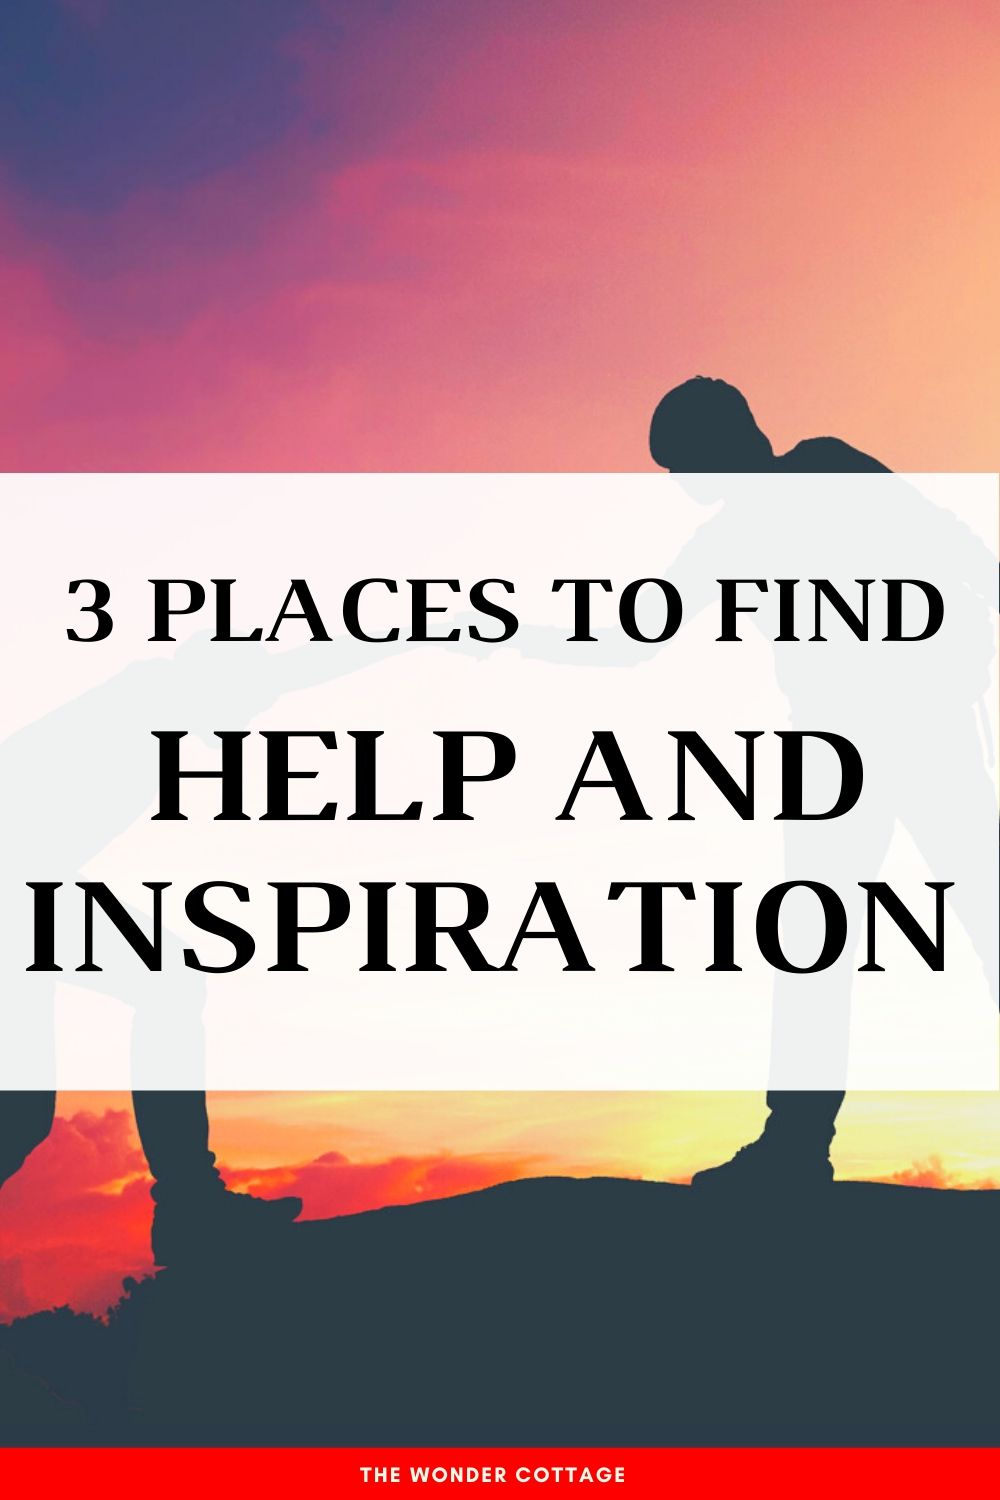 how to find help and inspiration